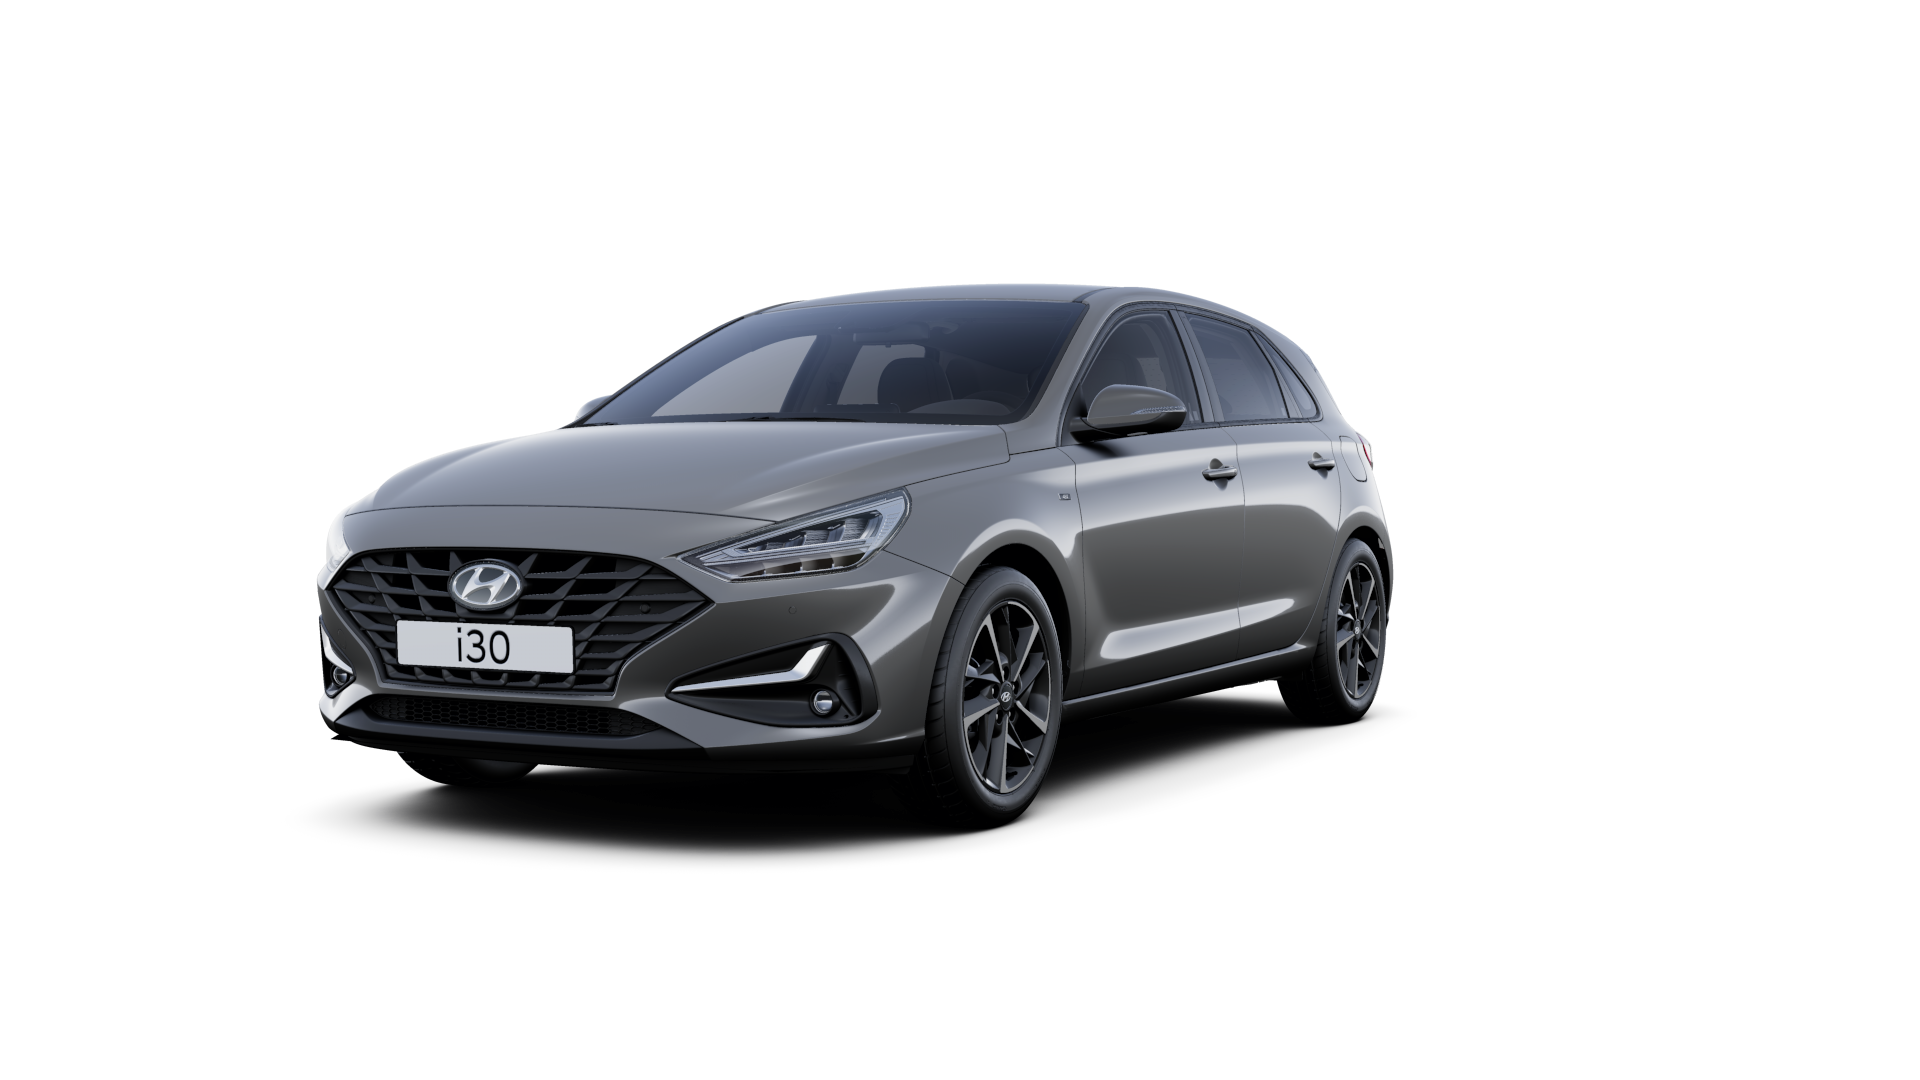 Front side view of the new Hyundai i30 in the colour Amazon Grey.